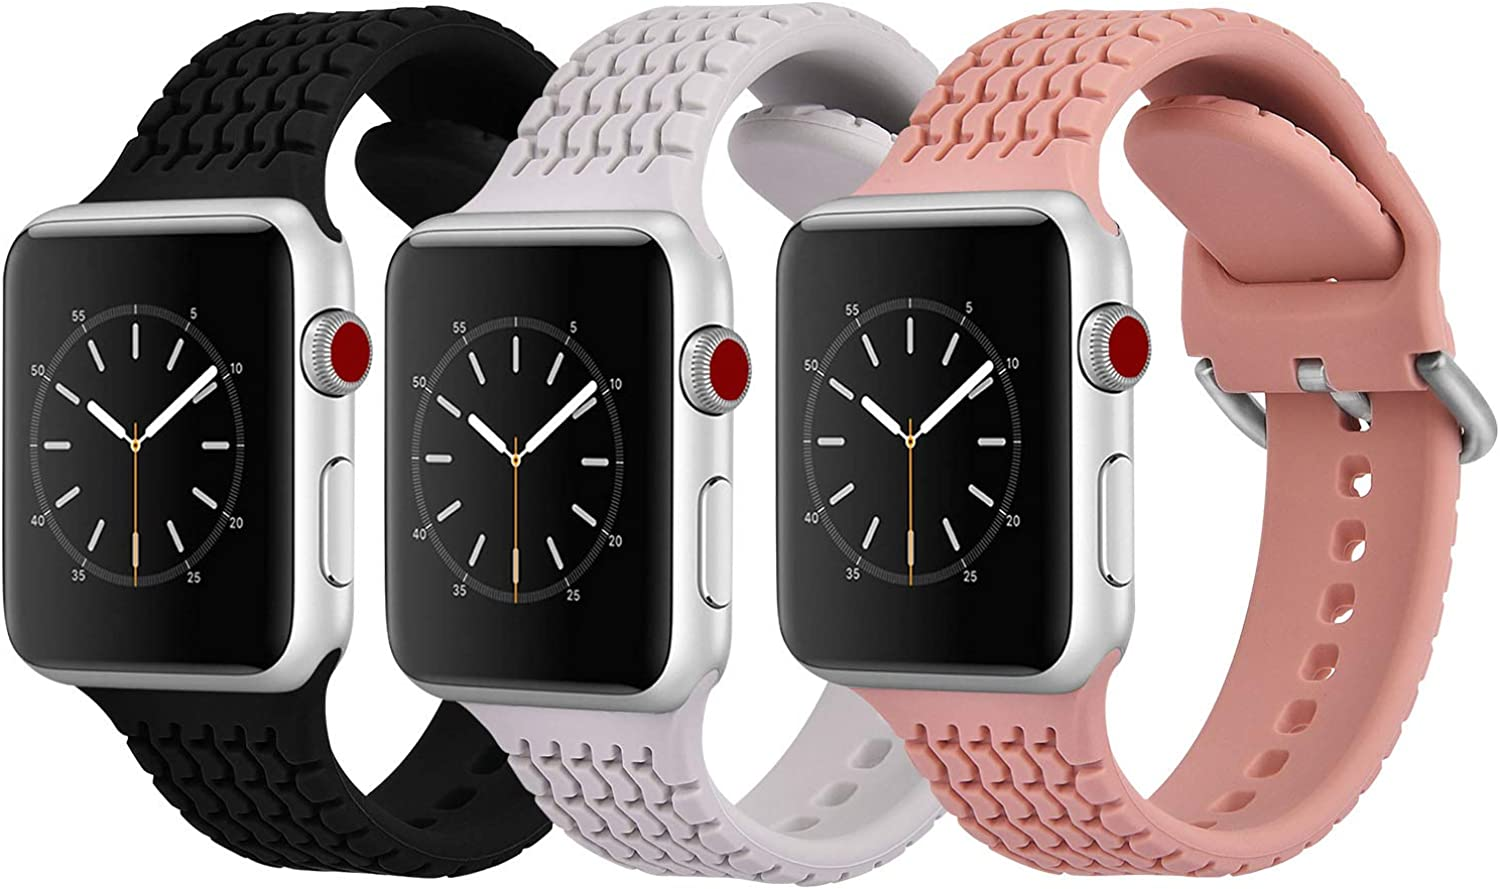 CAGOS Compatible with Apple Watch Bands 42mm 44mm Women Men, 3 Packs Sport Loop Waterproof Silicone Replacement Strap Wristband for iWatch Series 5/Series 4/3/2/1